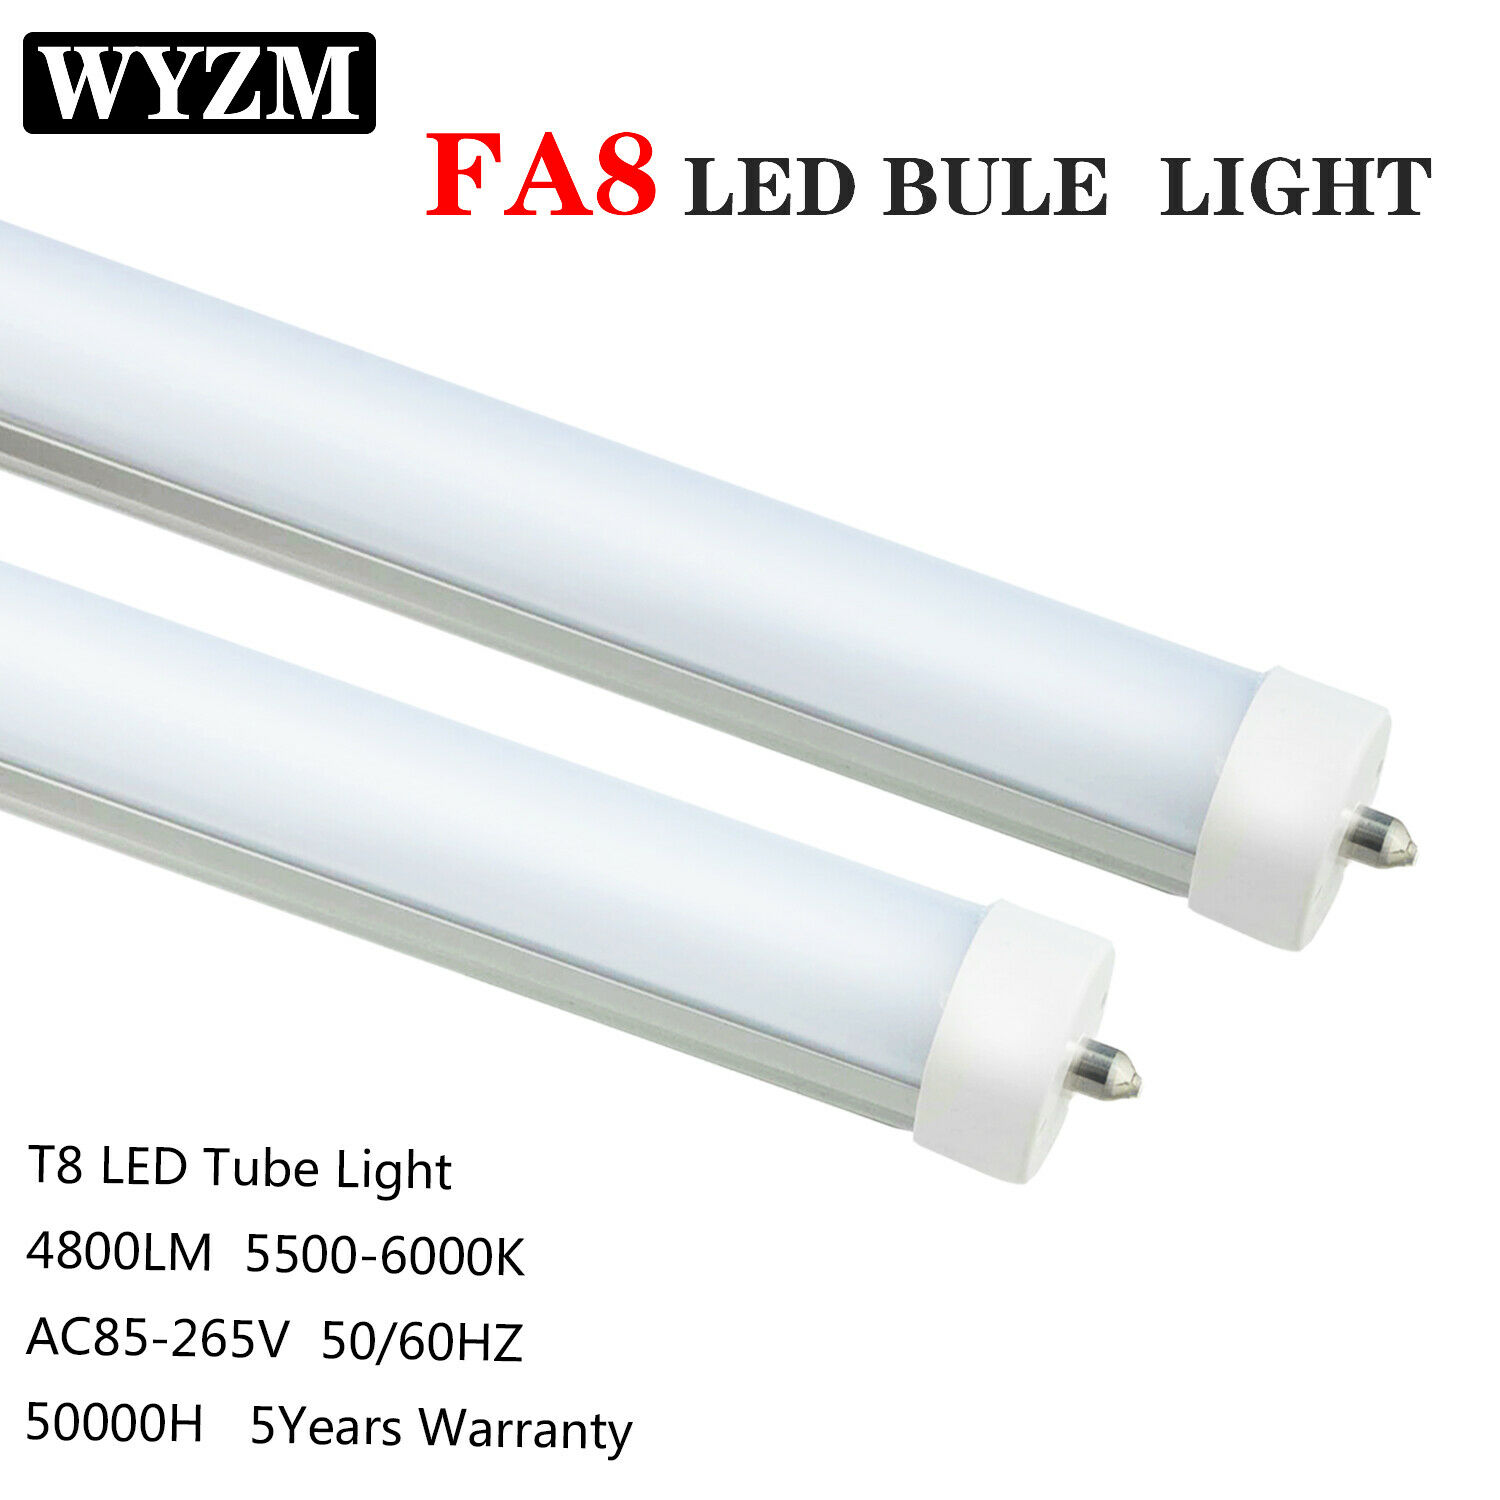 8ft LED Tube,40W Single Pin T12,8' F96T12 CW HO LED Fluorescent Tube Replacement